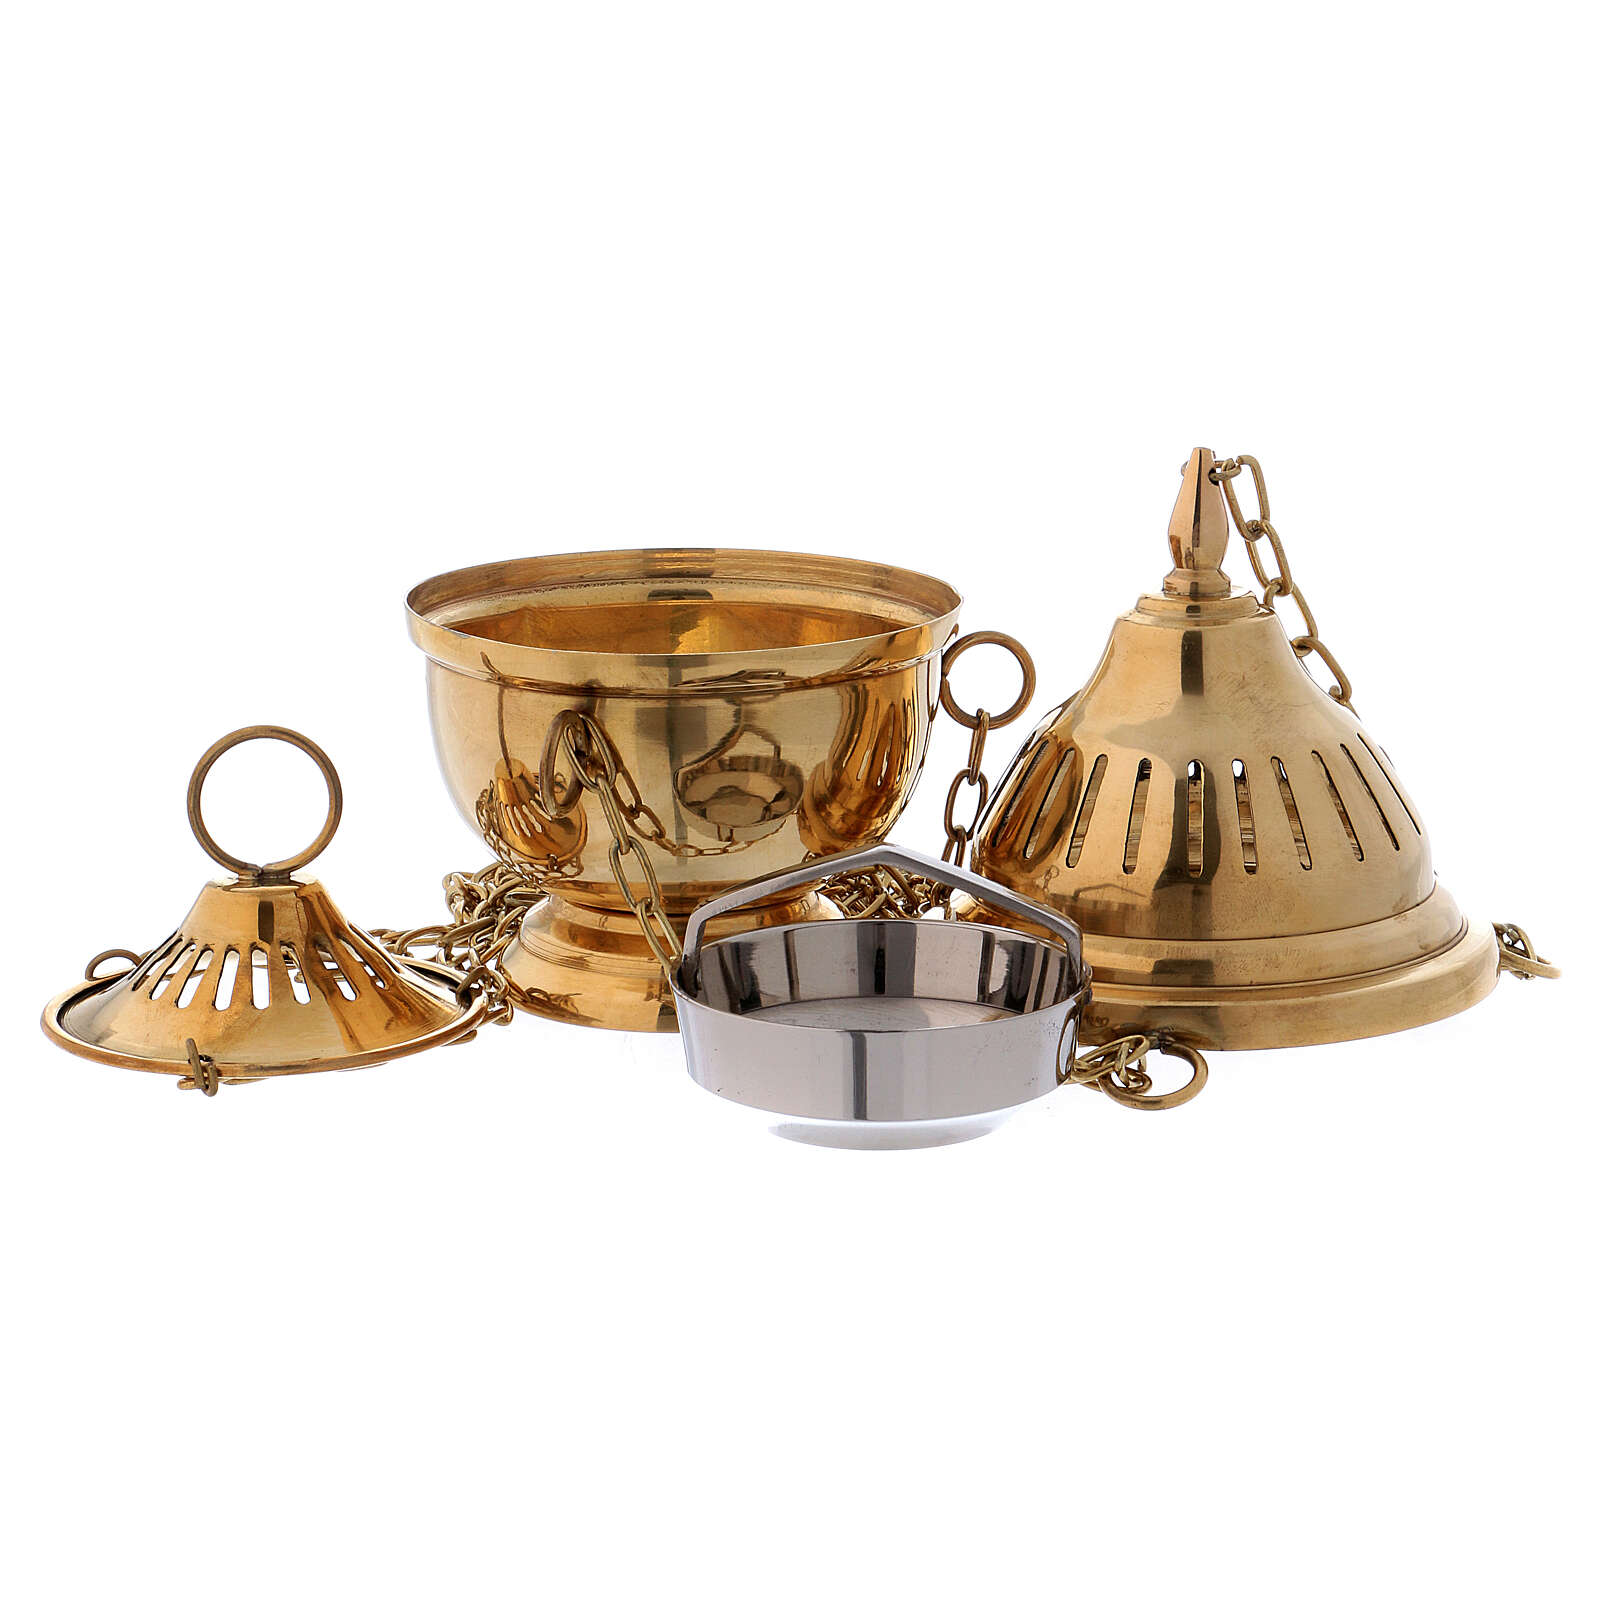 Striped thurible in polished gold plated brass h 6 1/4 in 3